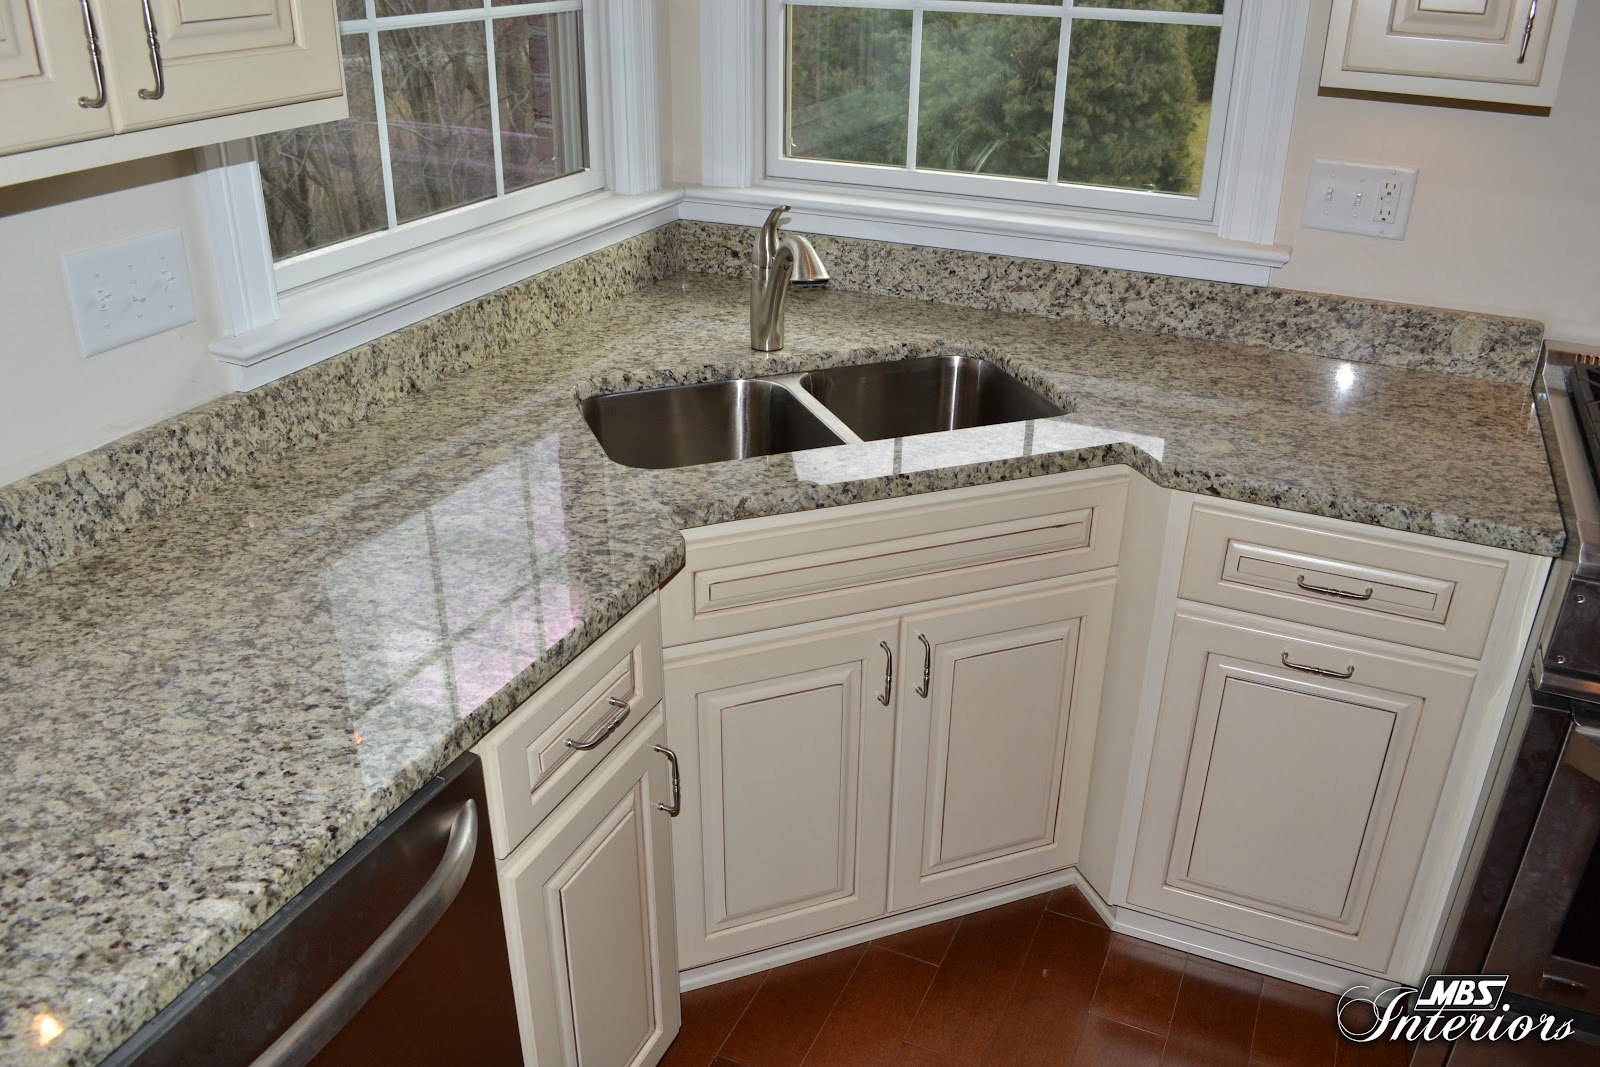 MBS Interiors Guide to Popular Kitchen Countertop Materials